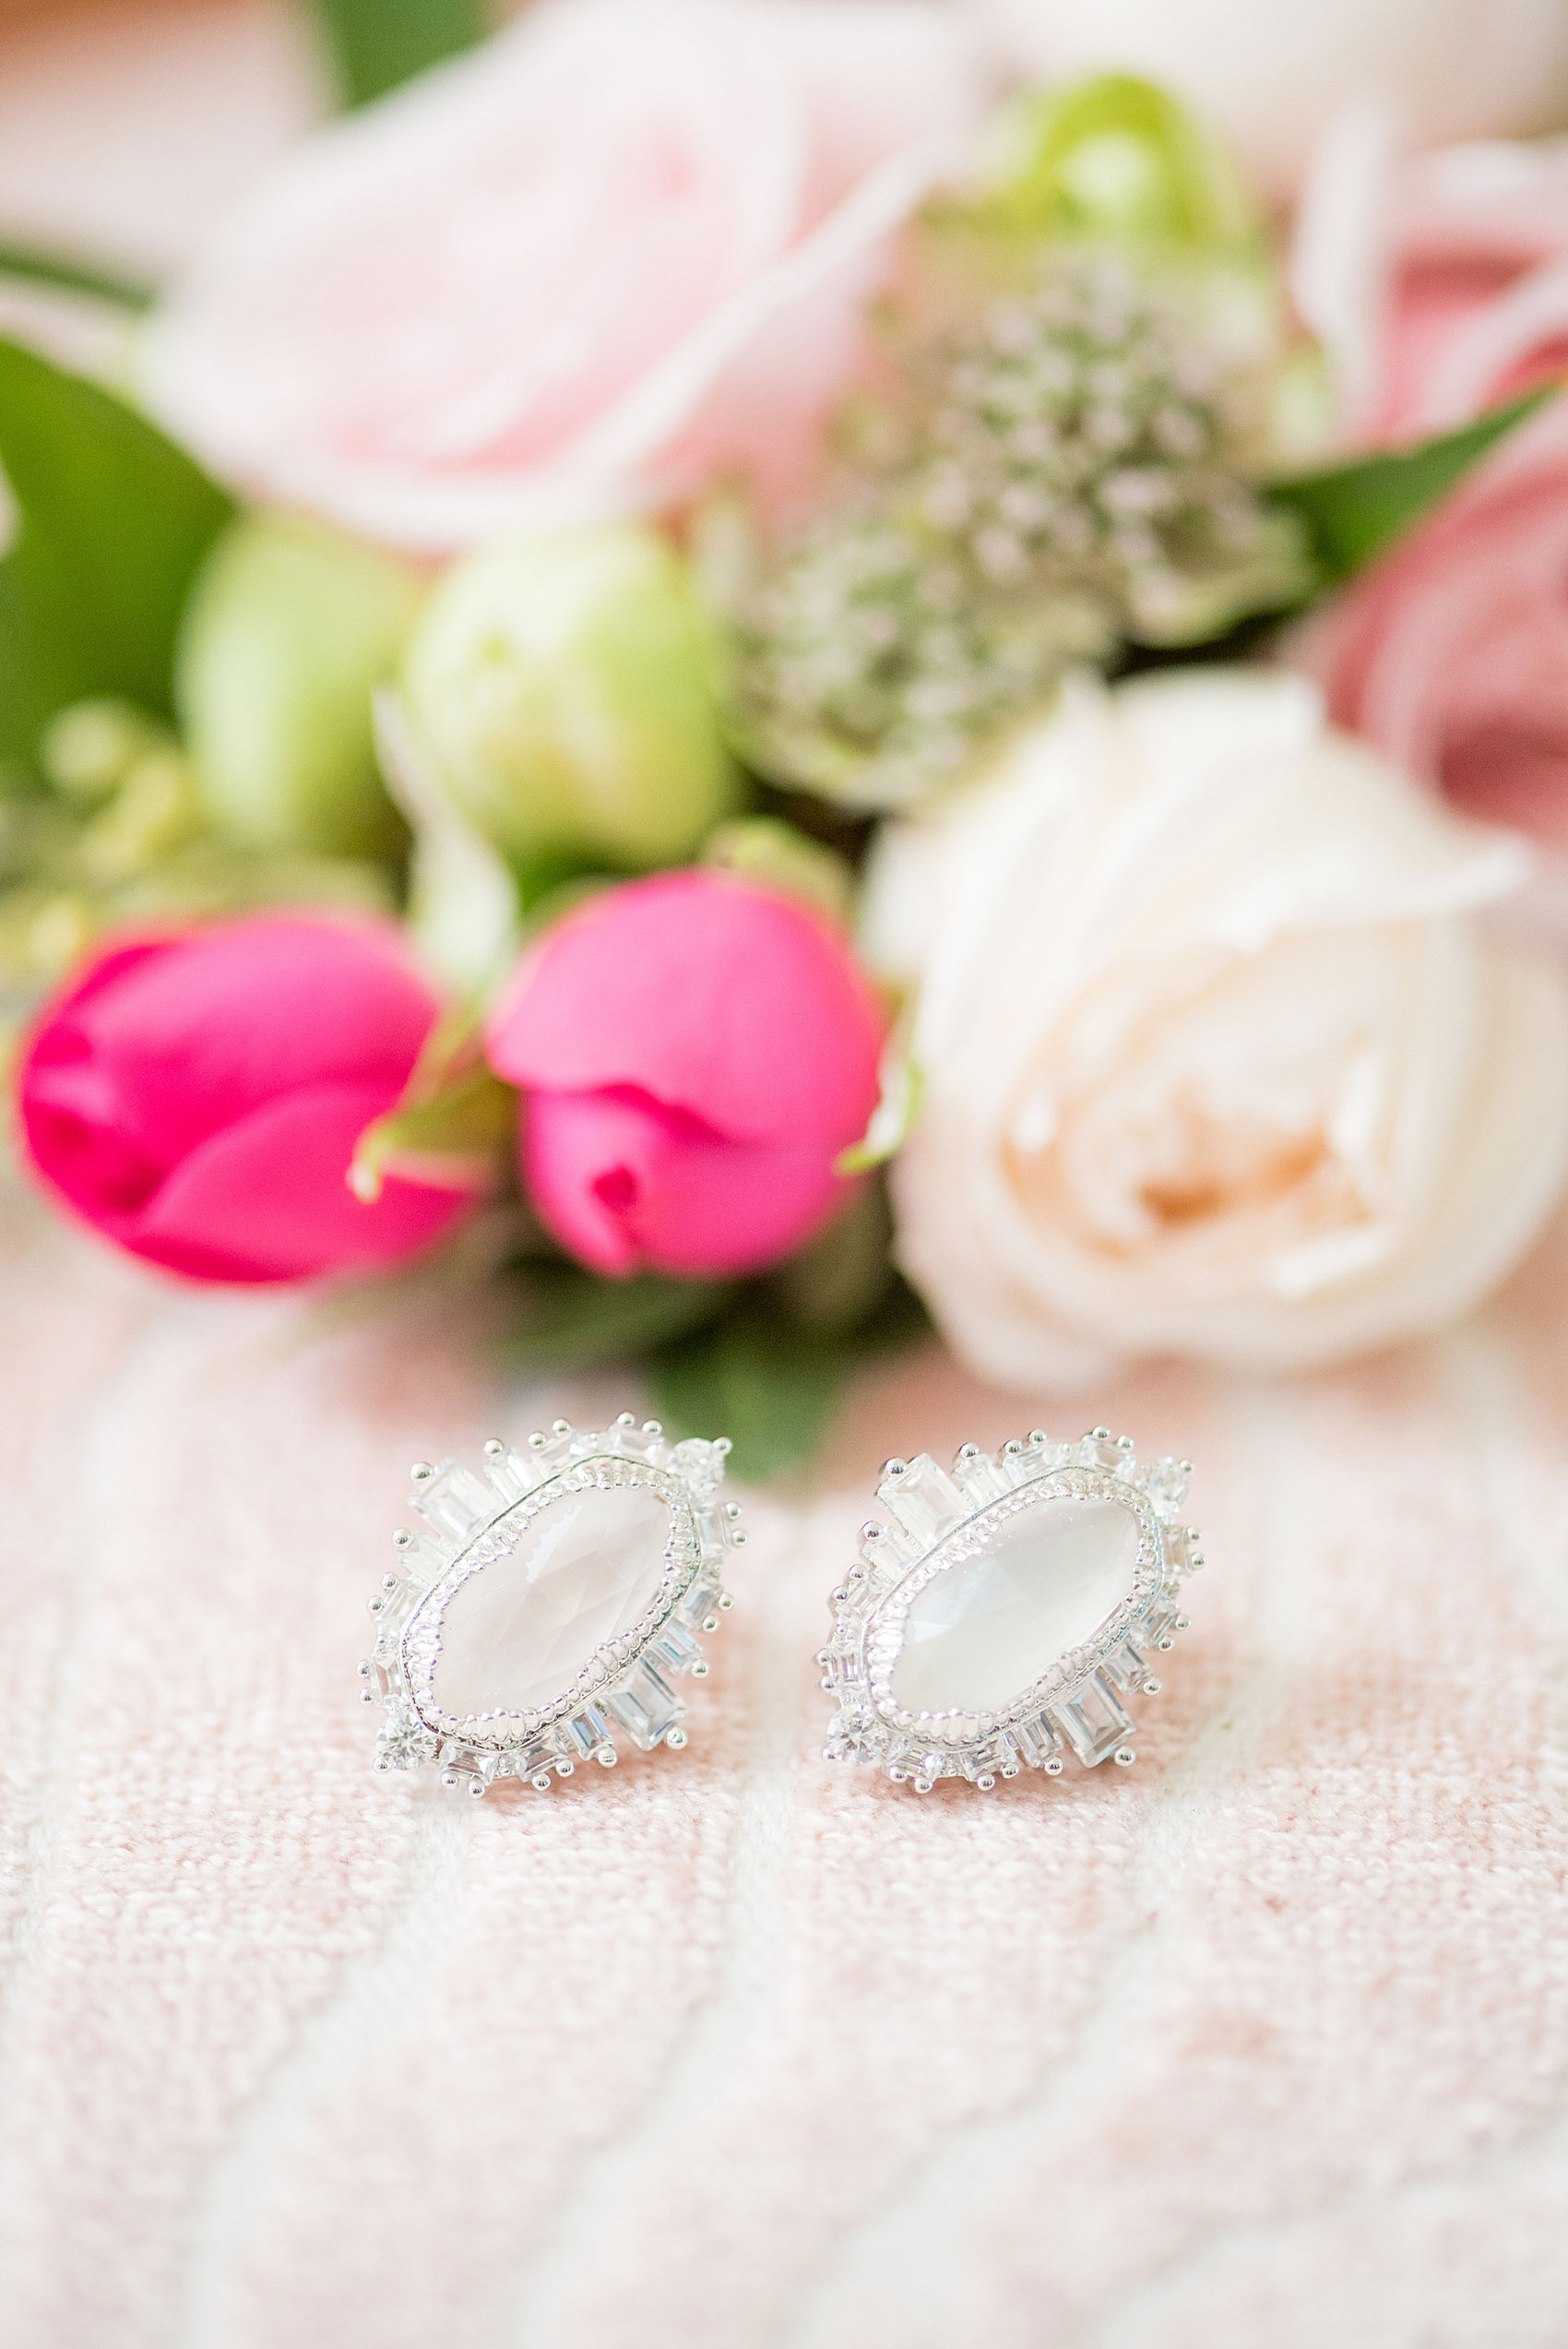 Mikkel Paige Photography pictures from a wedding at Merrimon-Wynne House in Raleigh, NC. Photo of the bride's white wedding earrings by Kendra Scott.